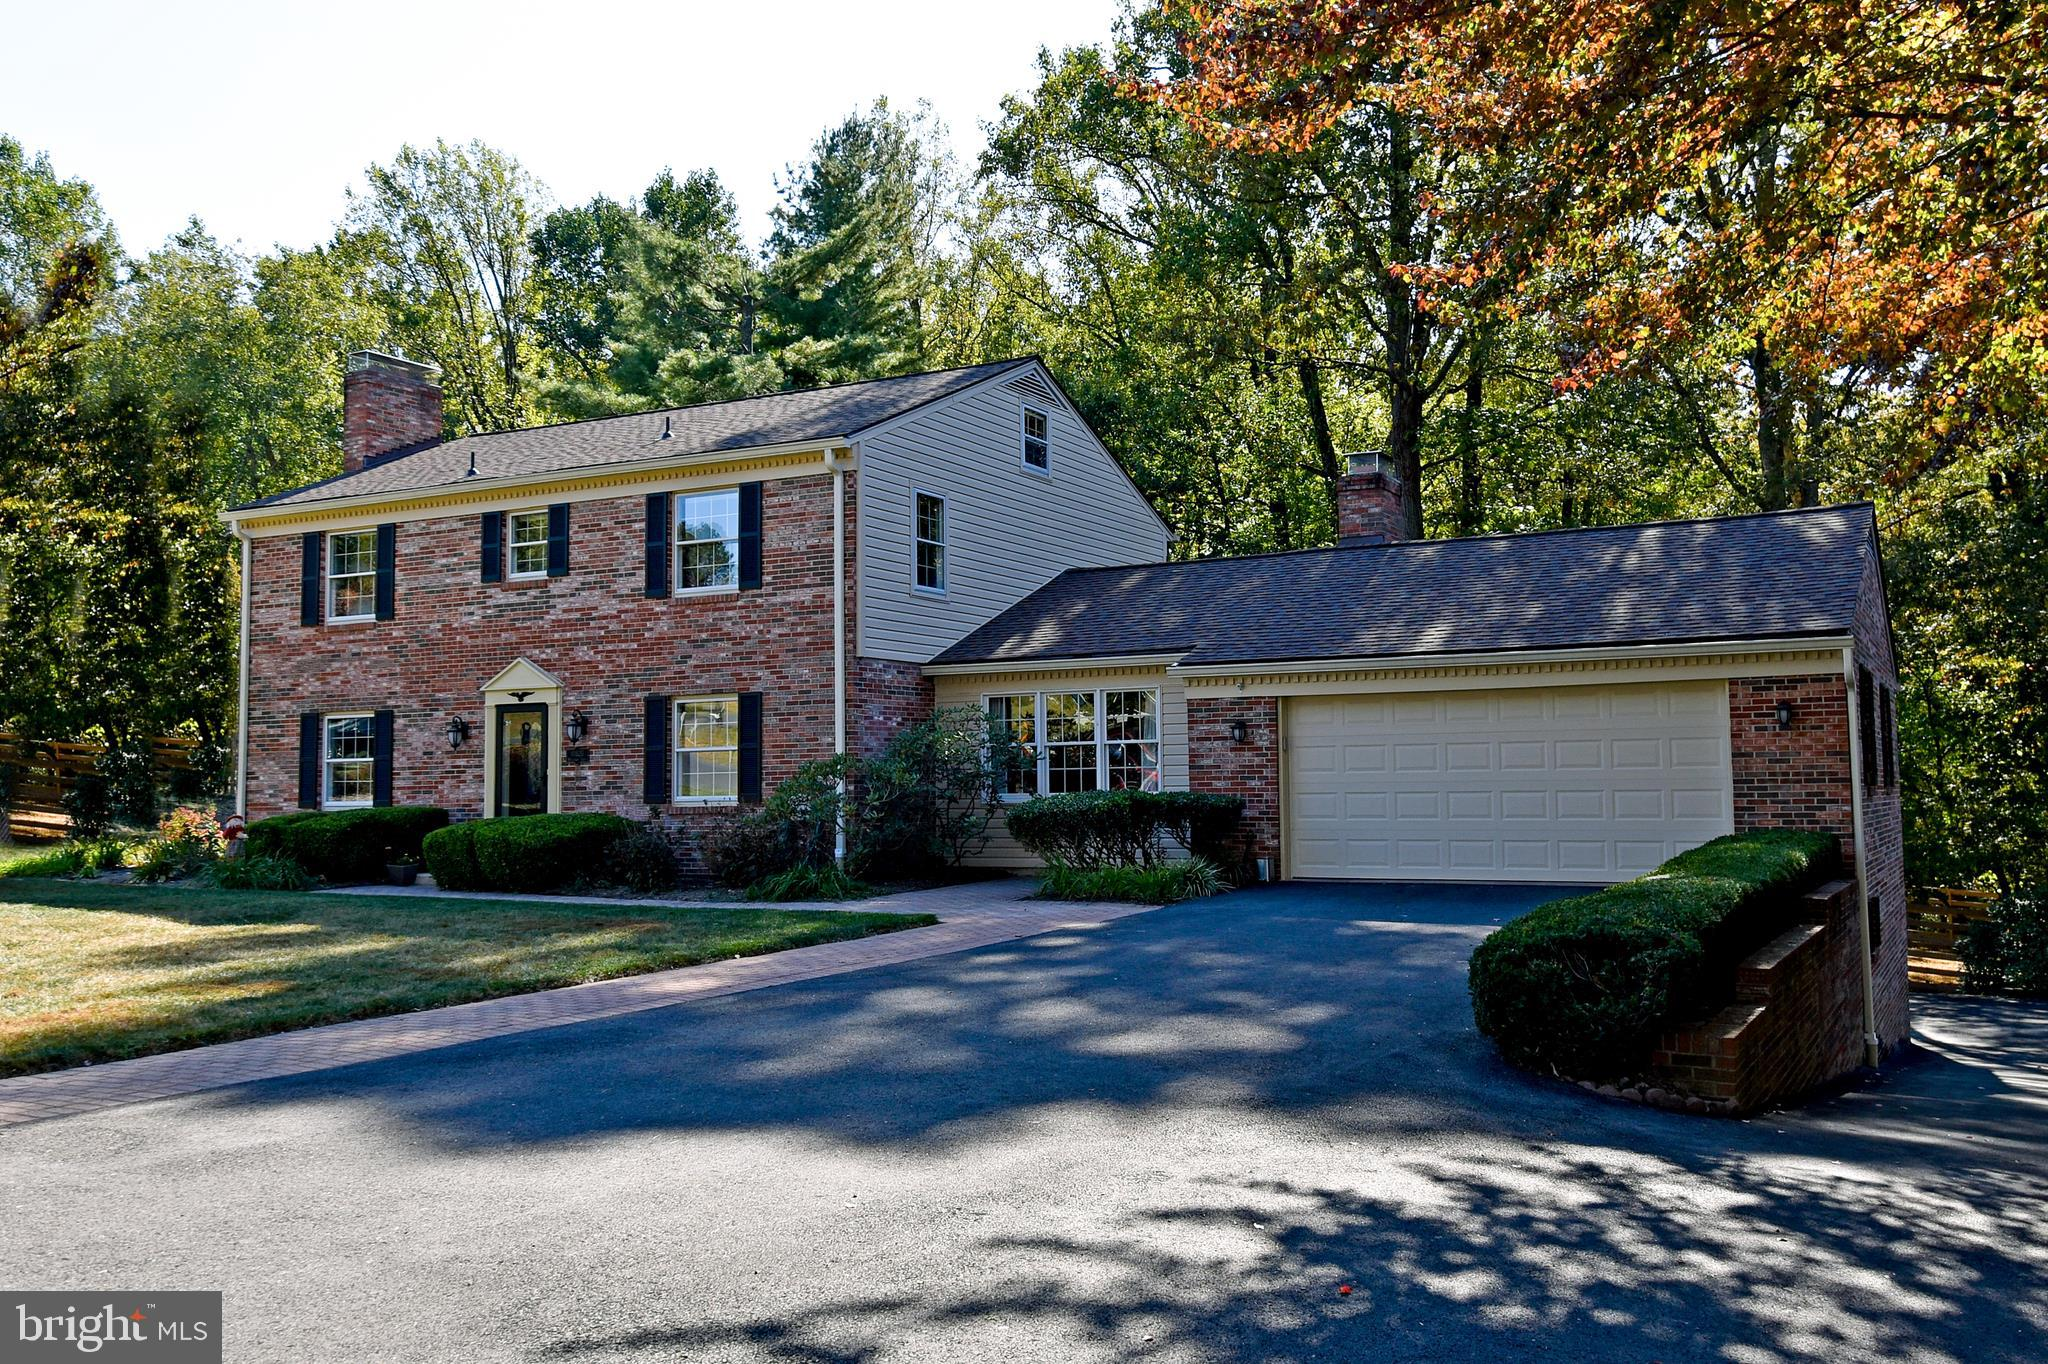 10820 MIDDLEBORO DRIVE, DAMASCUS, MD 20872